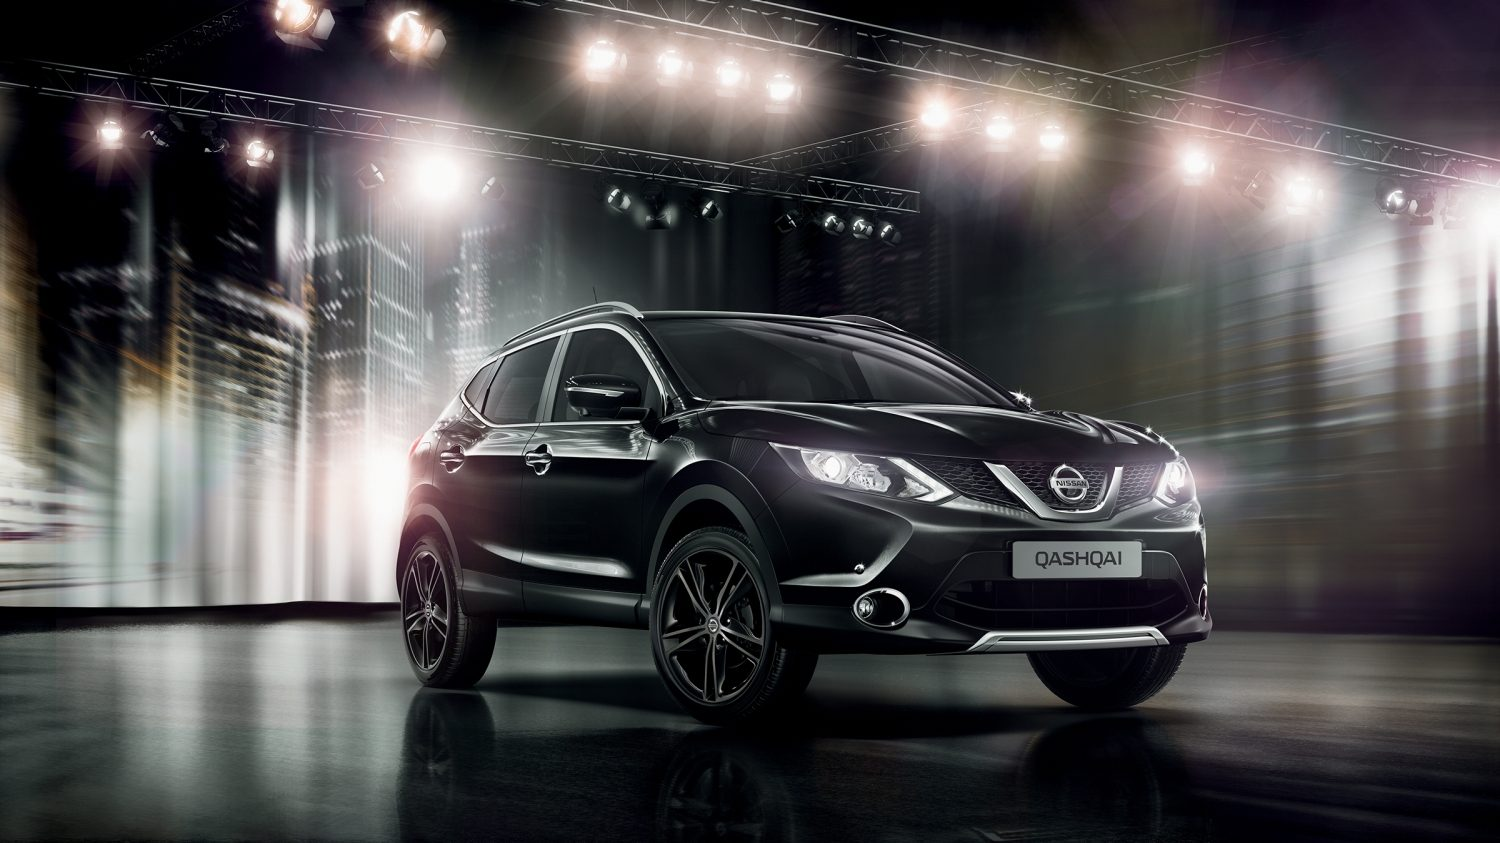 Qashqai Black Edition's exterior with black alloys and front and rear styling plates.